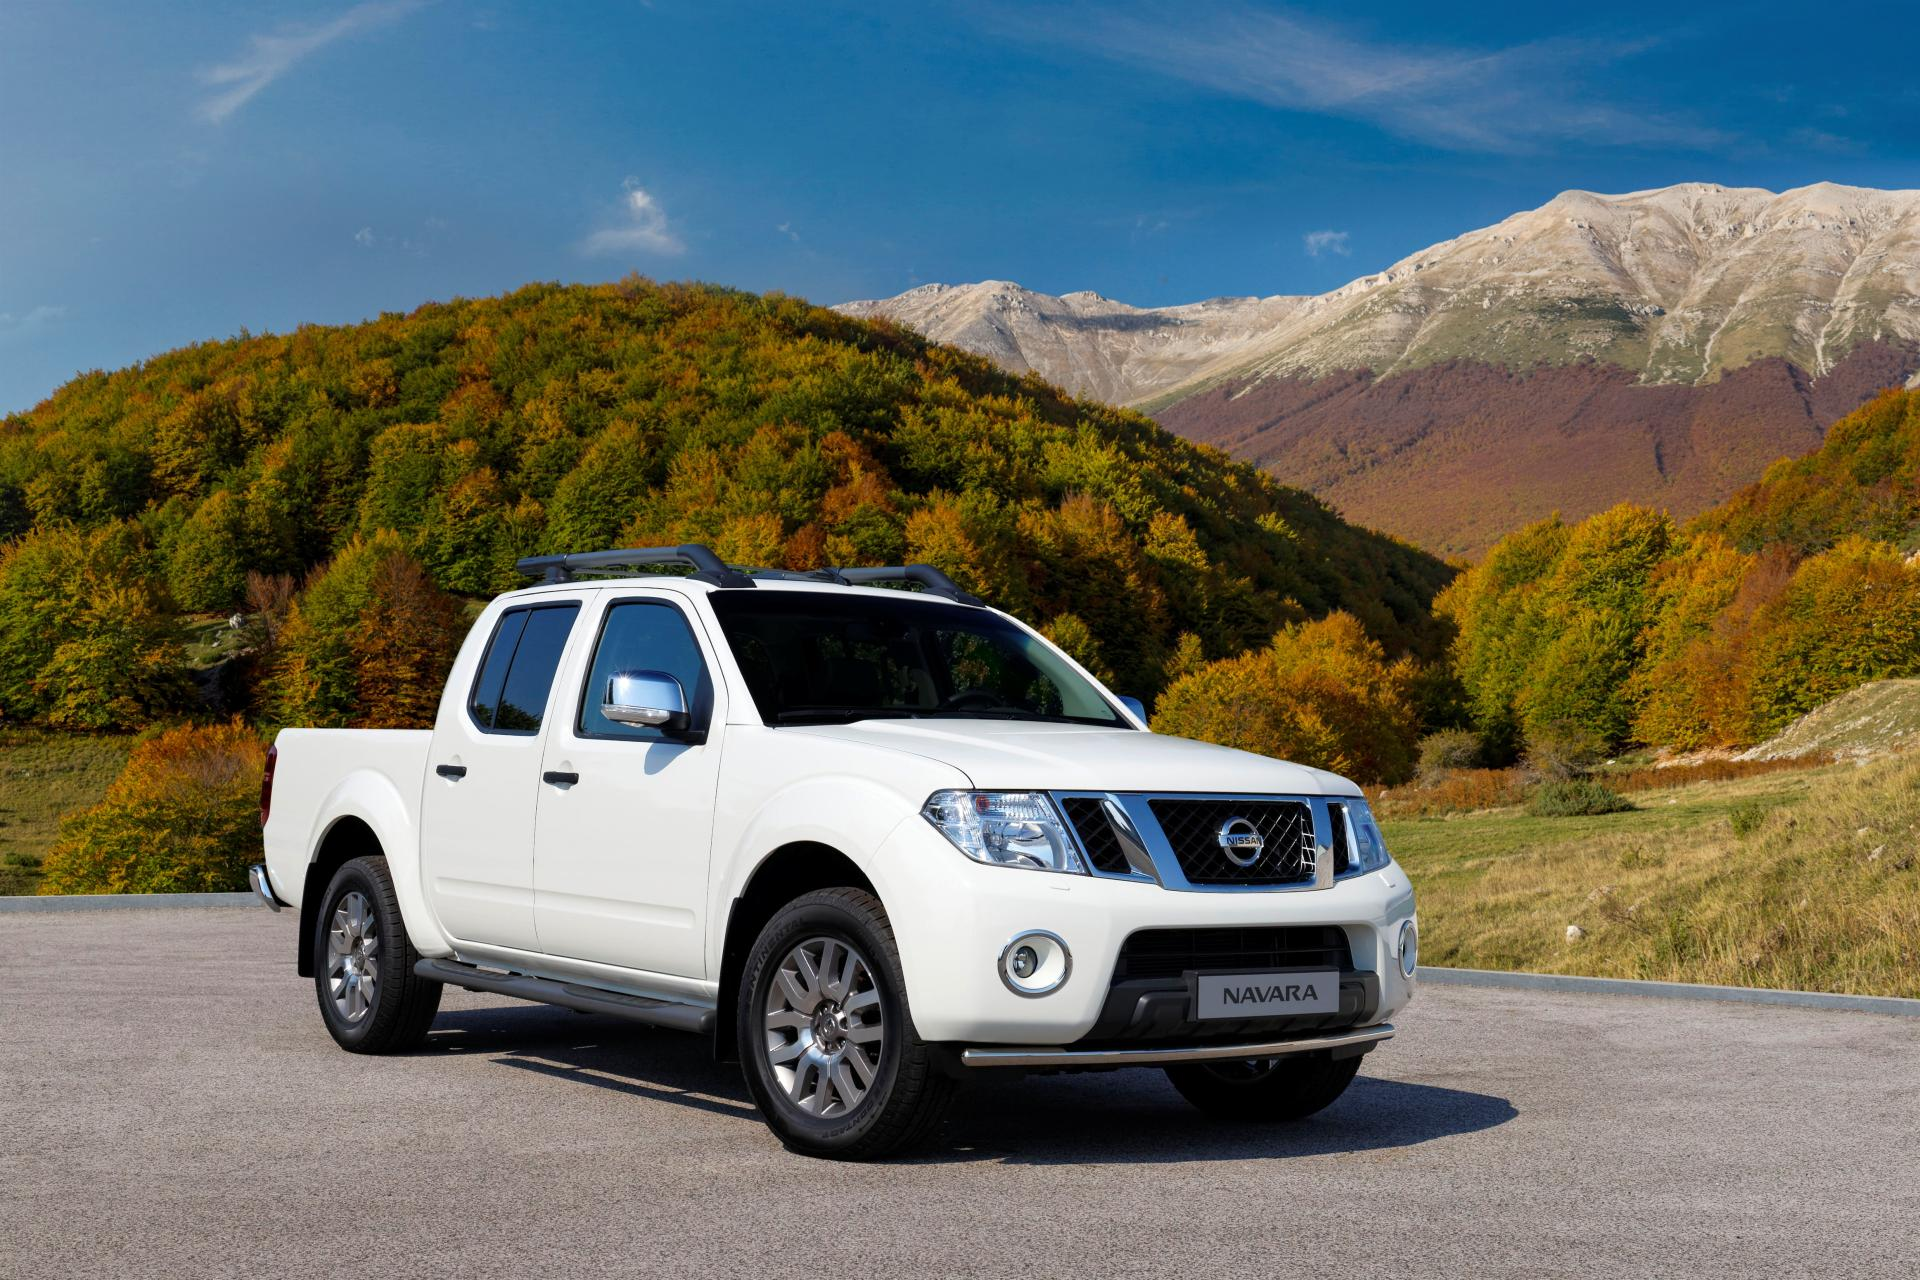 2014 nissan navara news and information. Black Bedroom Furniture Sets. Home Design Ideas